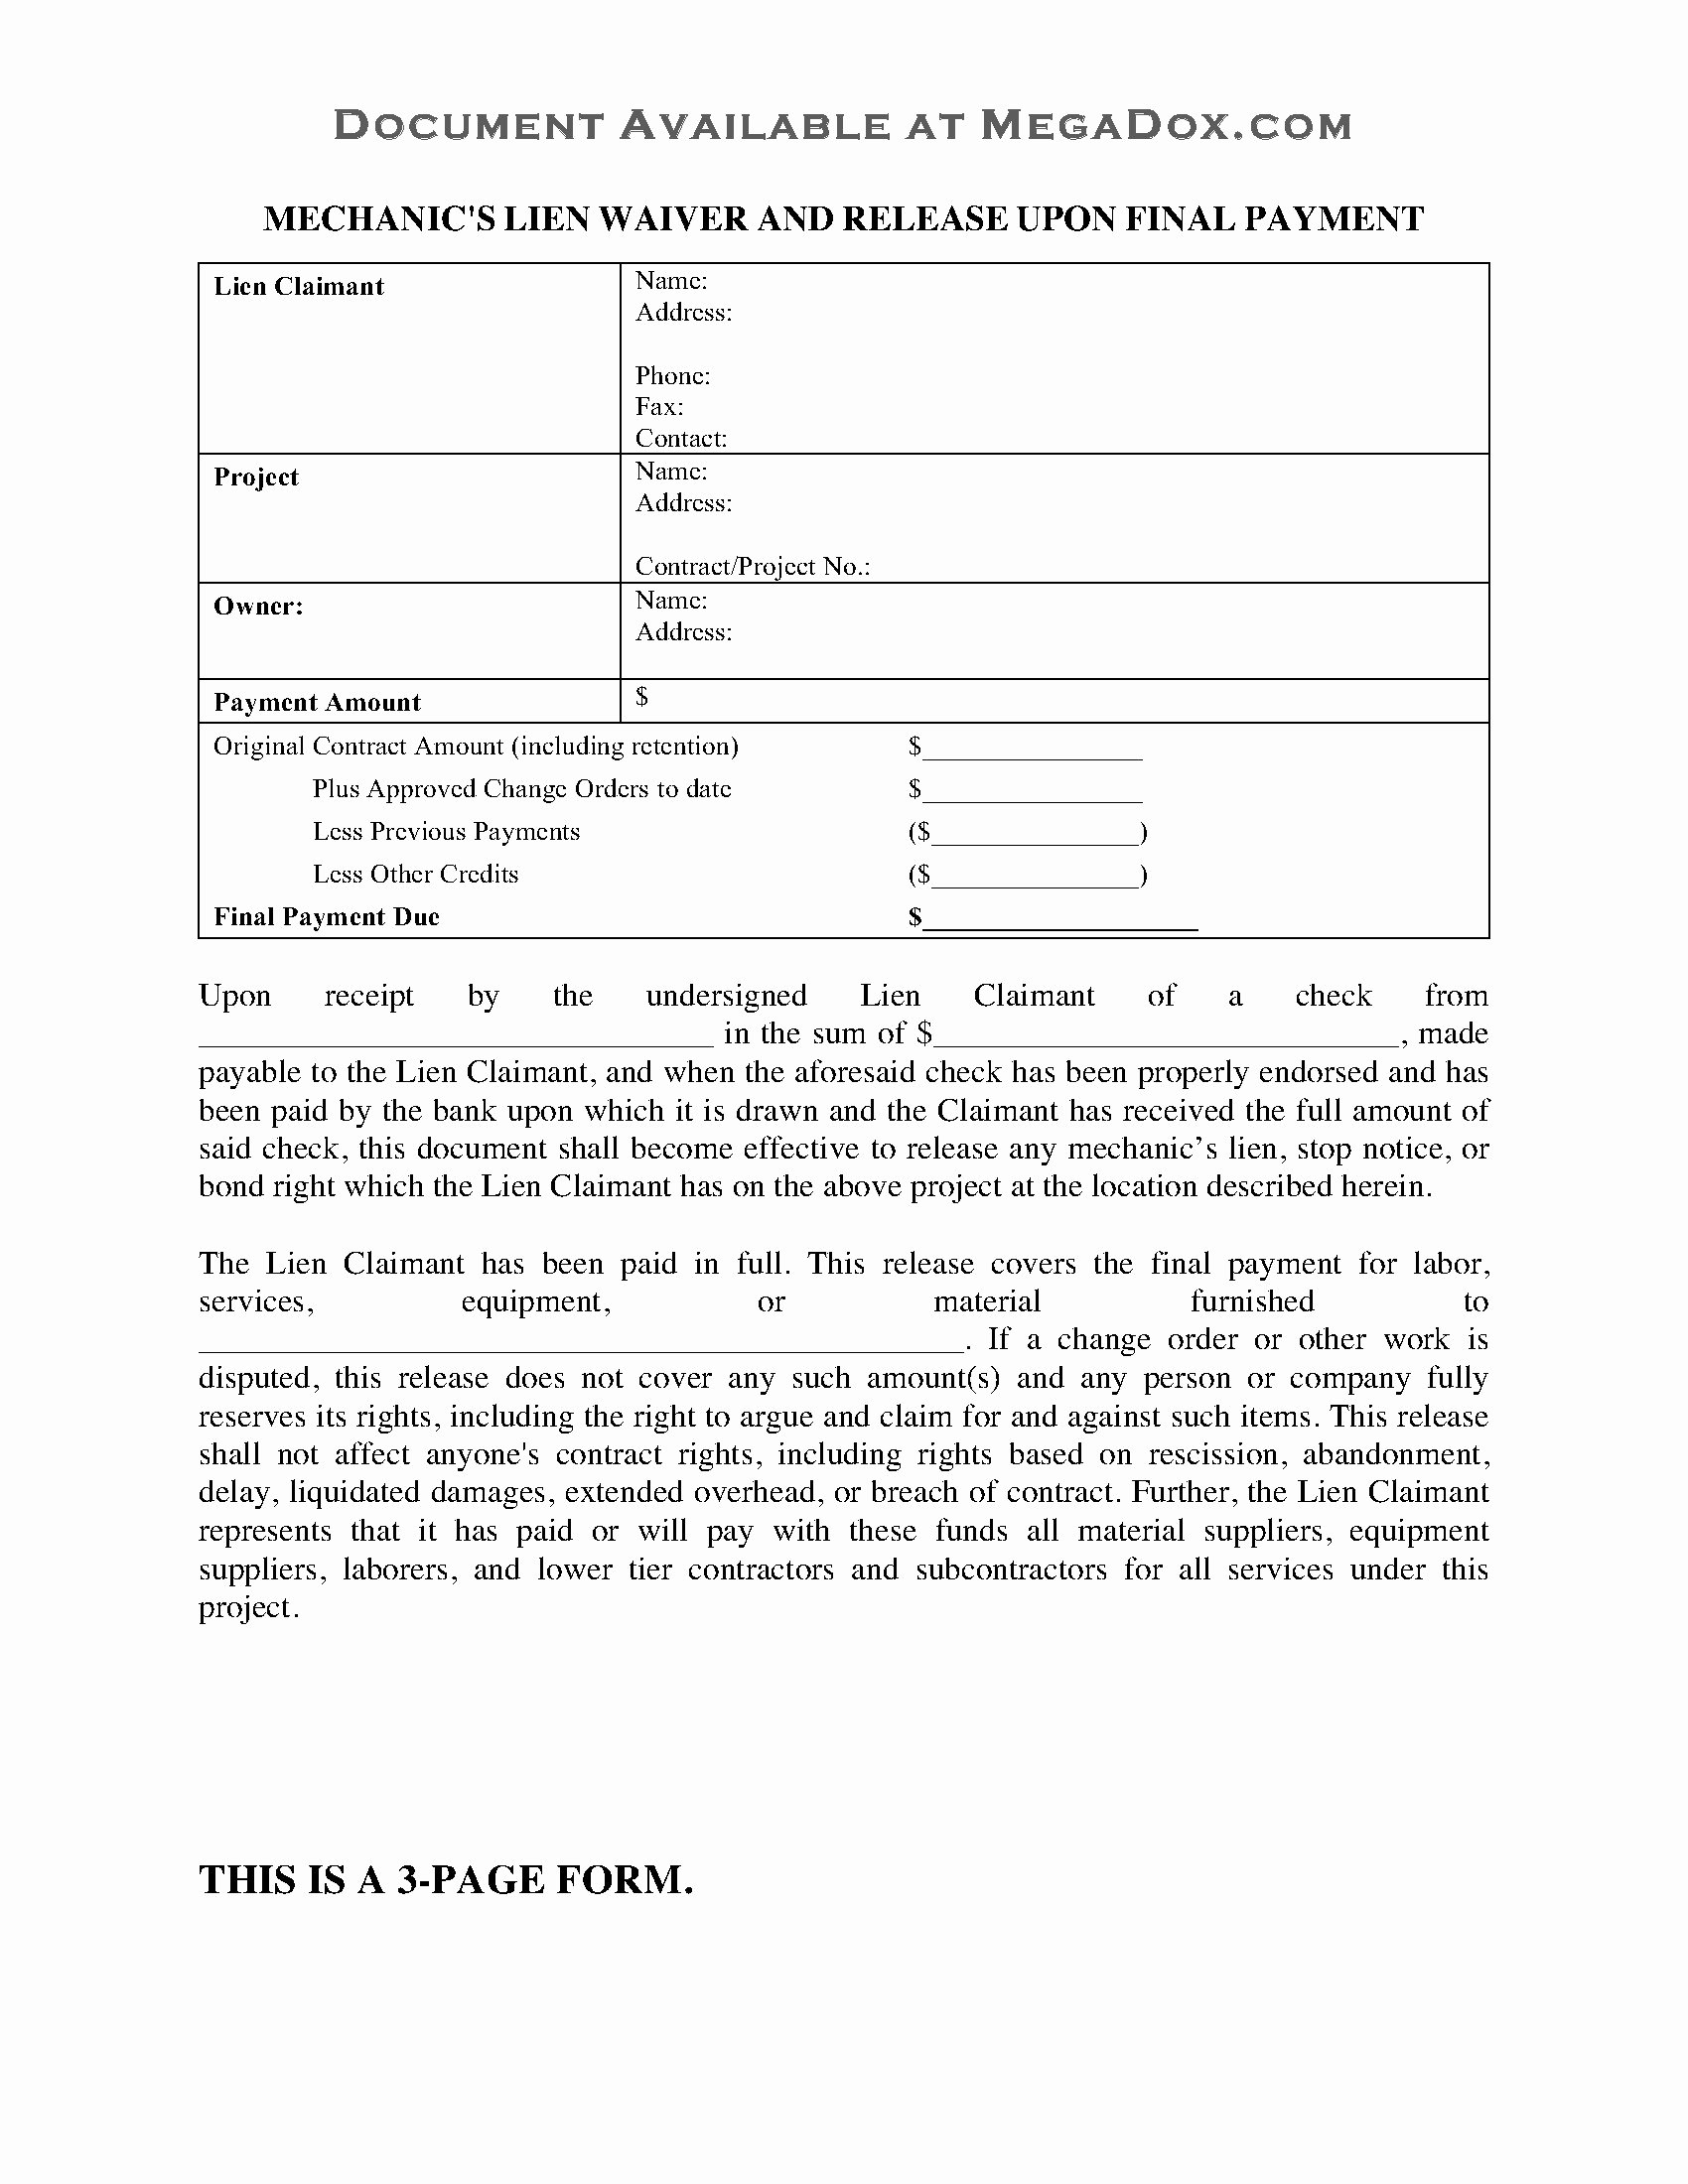 Final Lien Waiver Template Luxury Oklahoma Mechanic S Lien Waiver and Release On Final